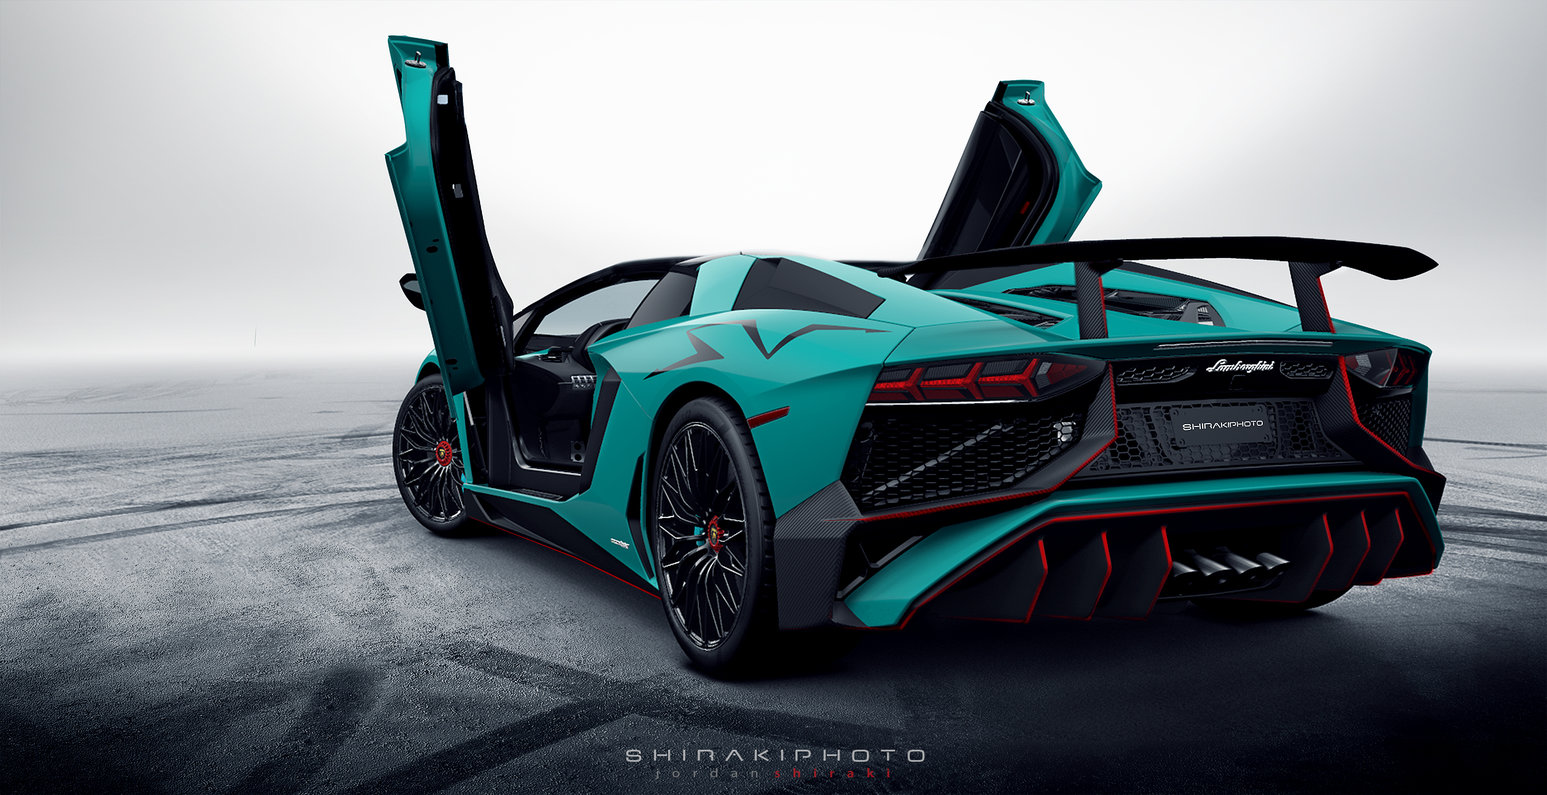 Green Lamborghini Doors Up 124.96 Kb